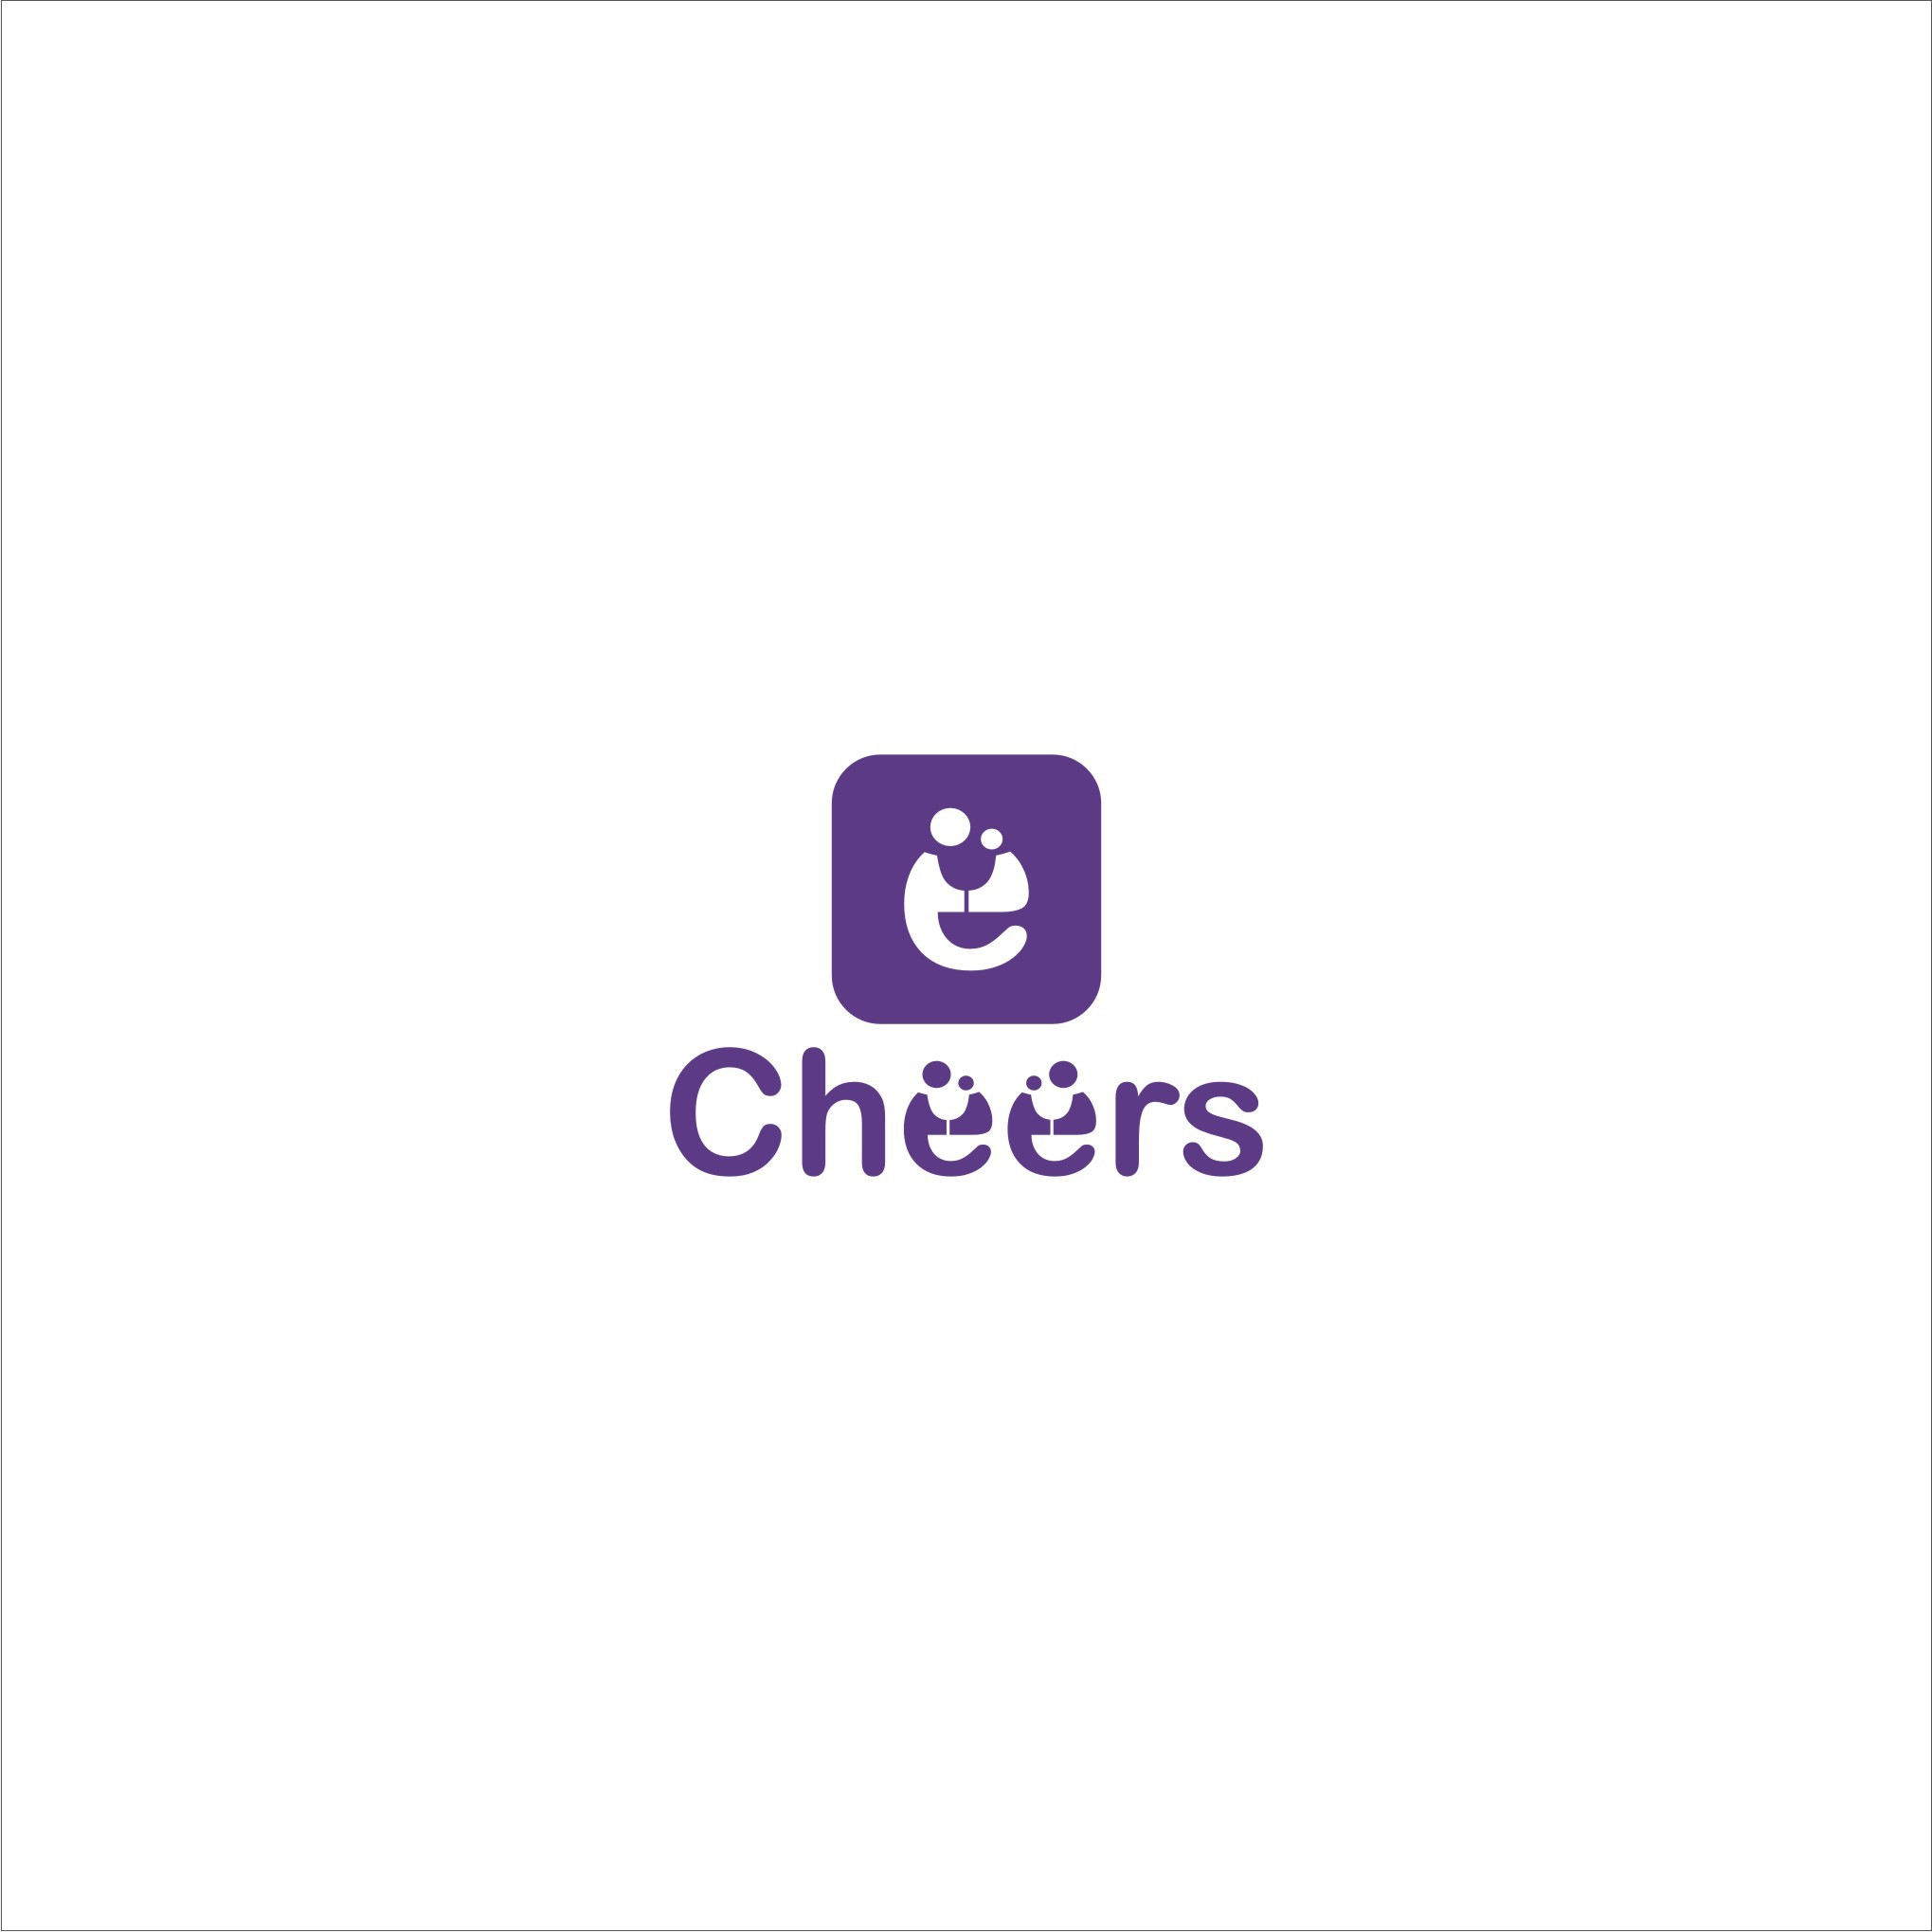 """Say """"Cheers"""" and give us an awesome logo!!"""